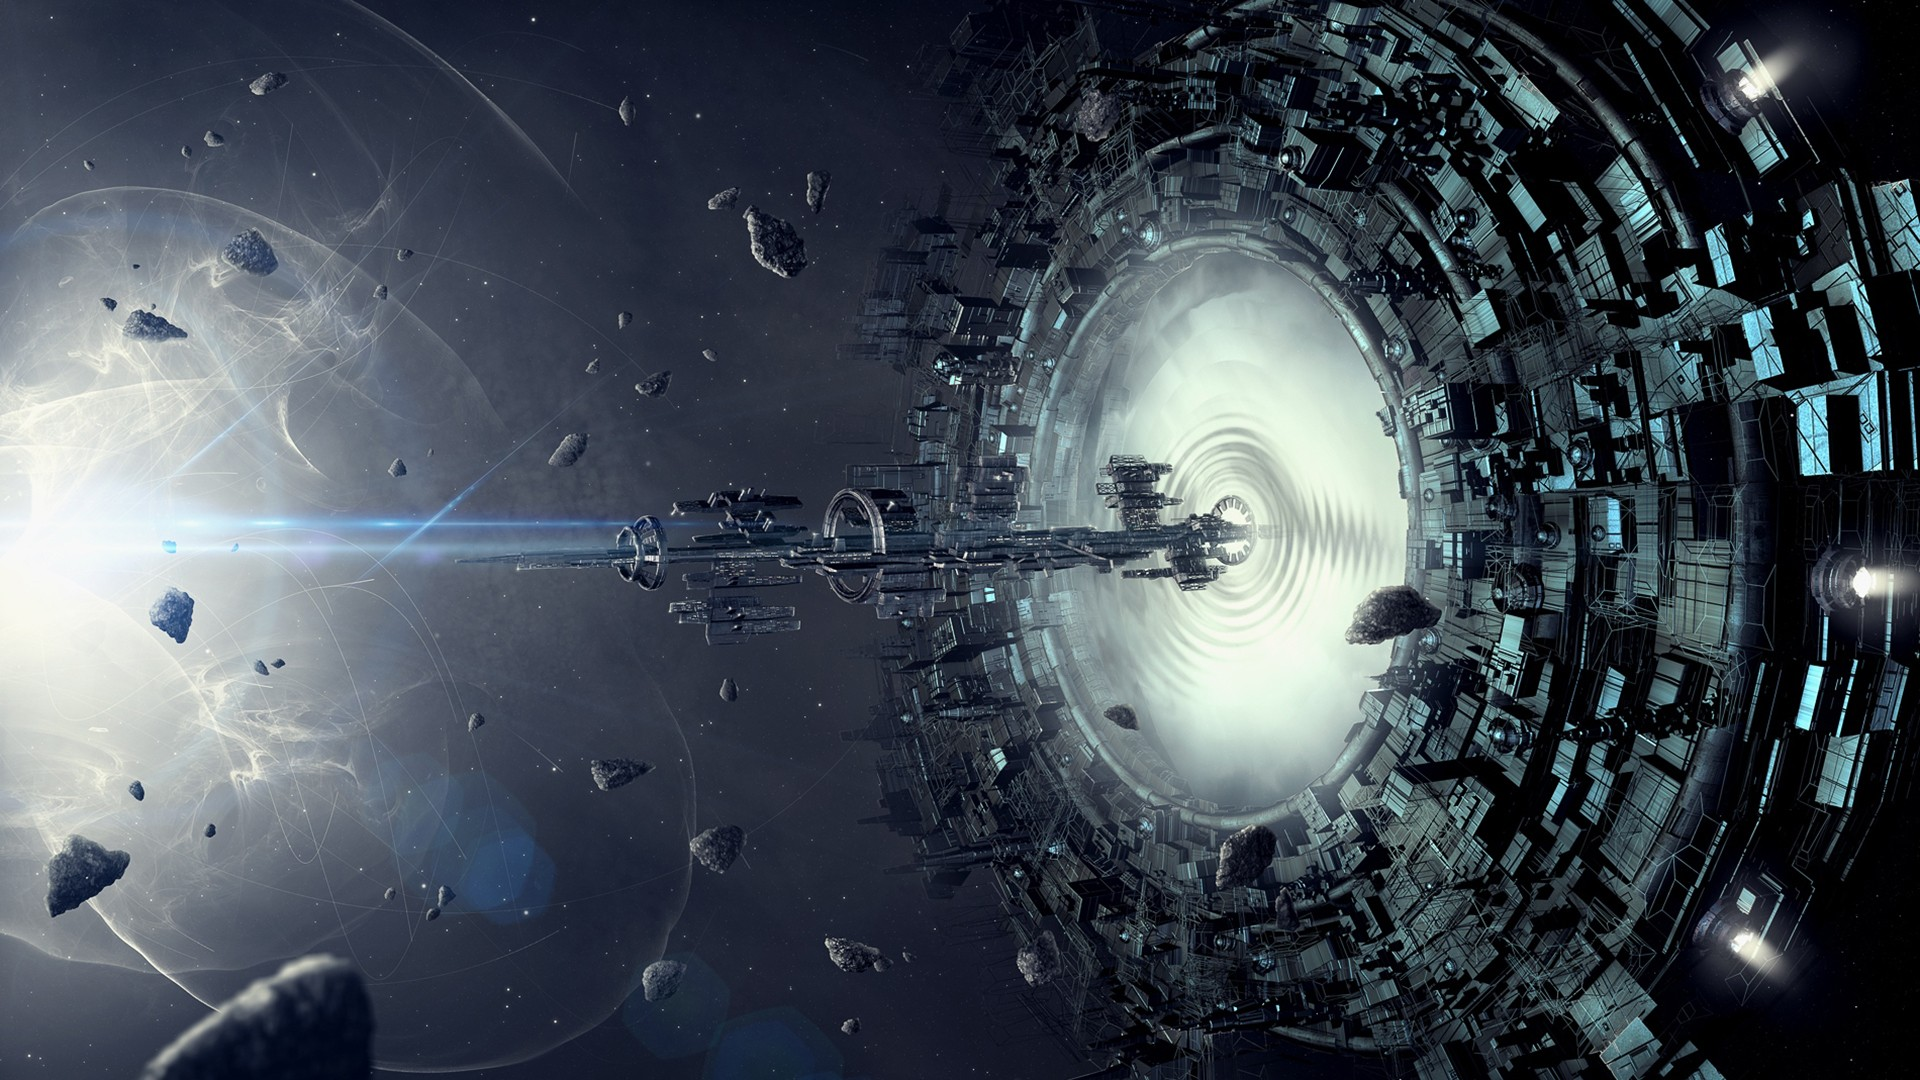 spaceship hd wallpapers 1080p